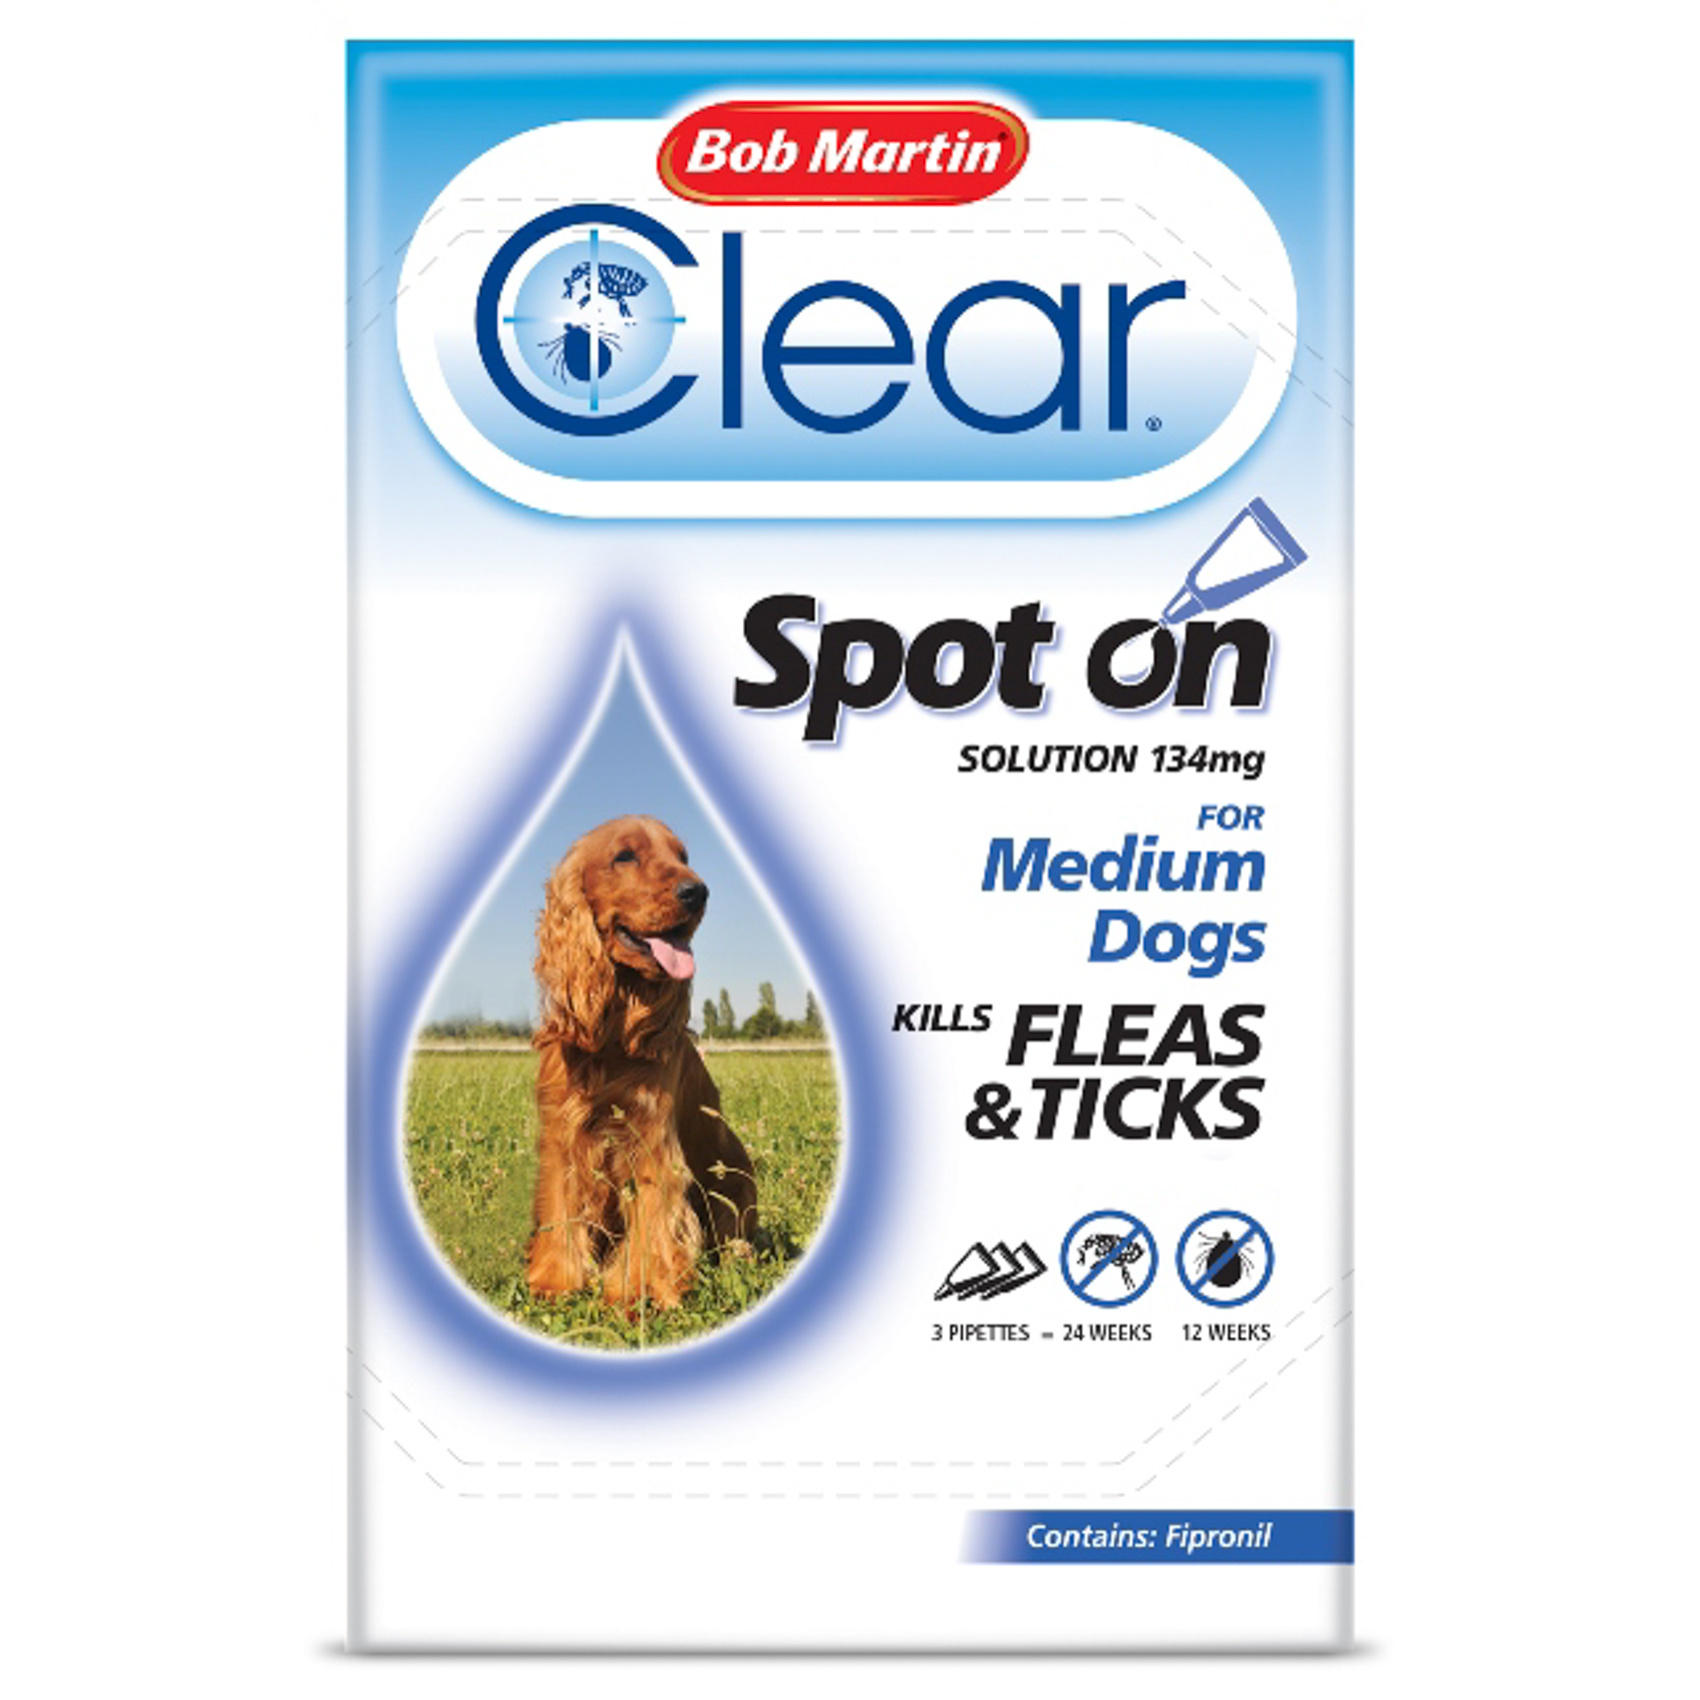 Bob Martin Flea Clear Spot On Medium Dog 10 20kg